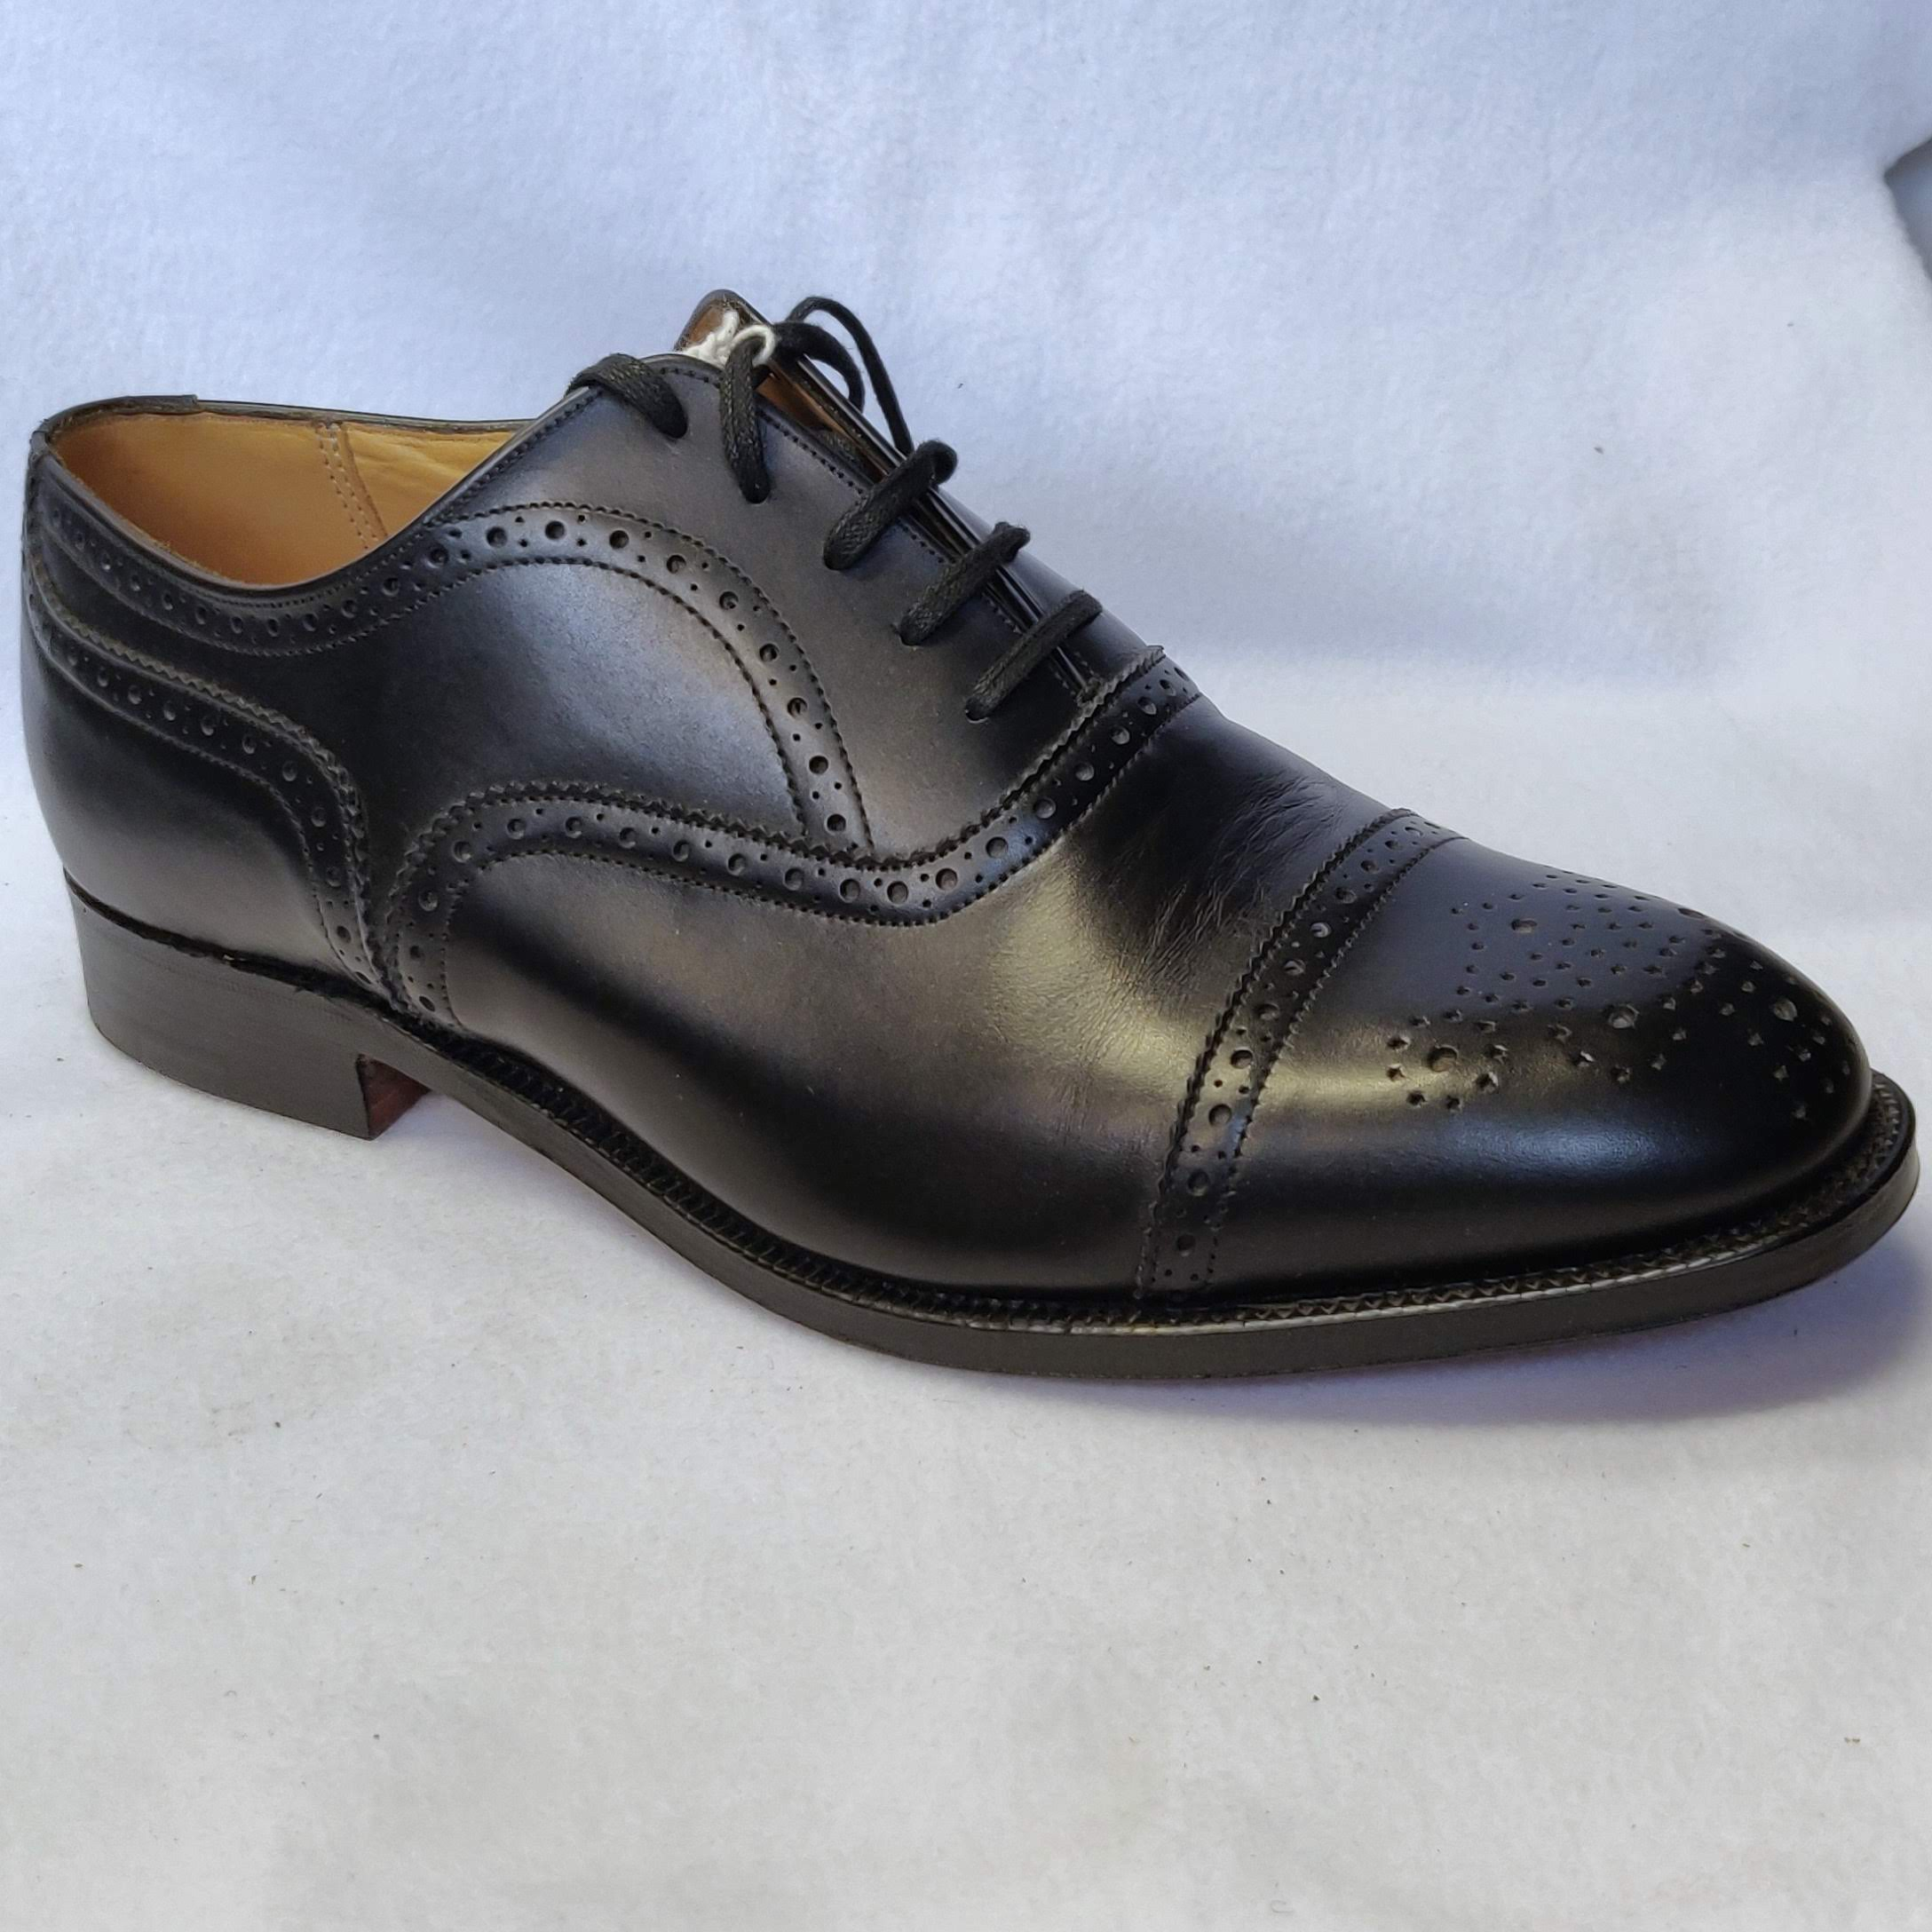 Gents Alfred Greenwich Black Broges Size 7